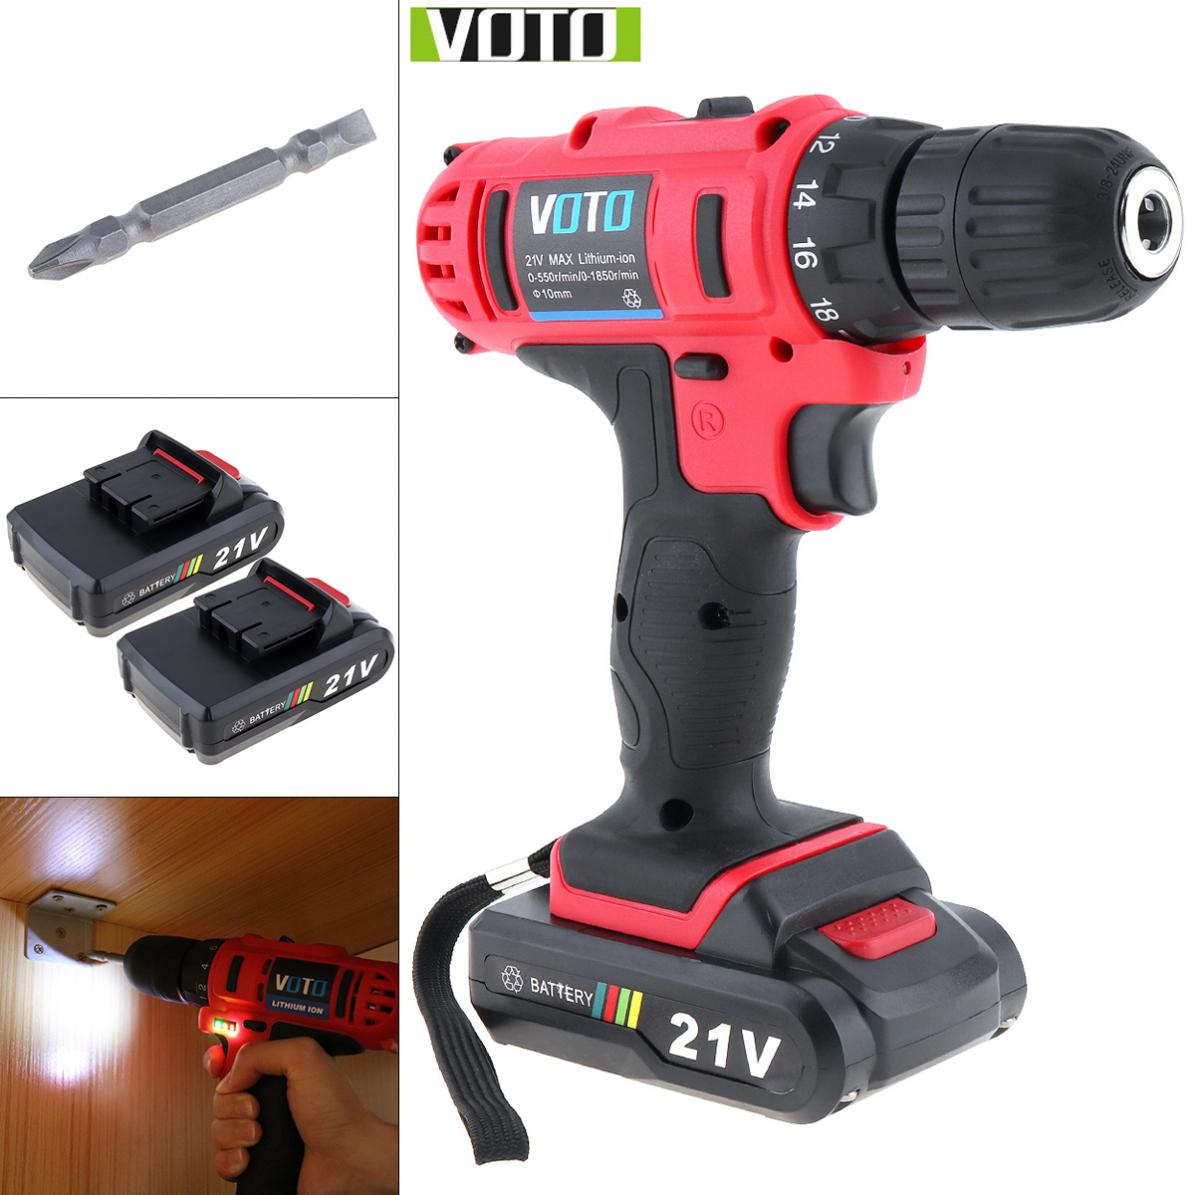 VOTO AC 100 240V Cordless 21V Two speed Electric Screwdriver / Drill with 2 Lithium Batteries and Power Display Light